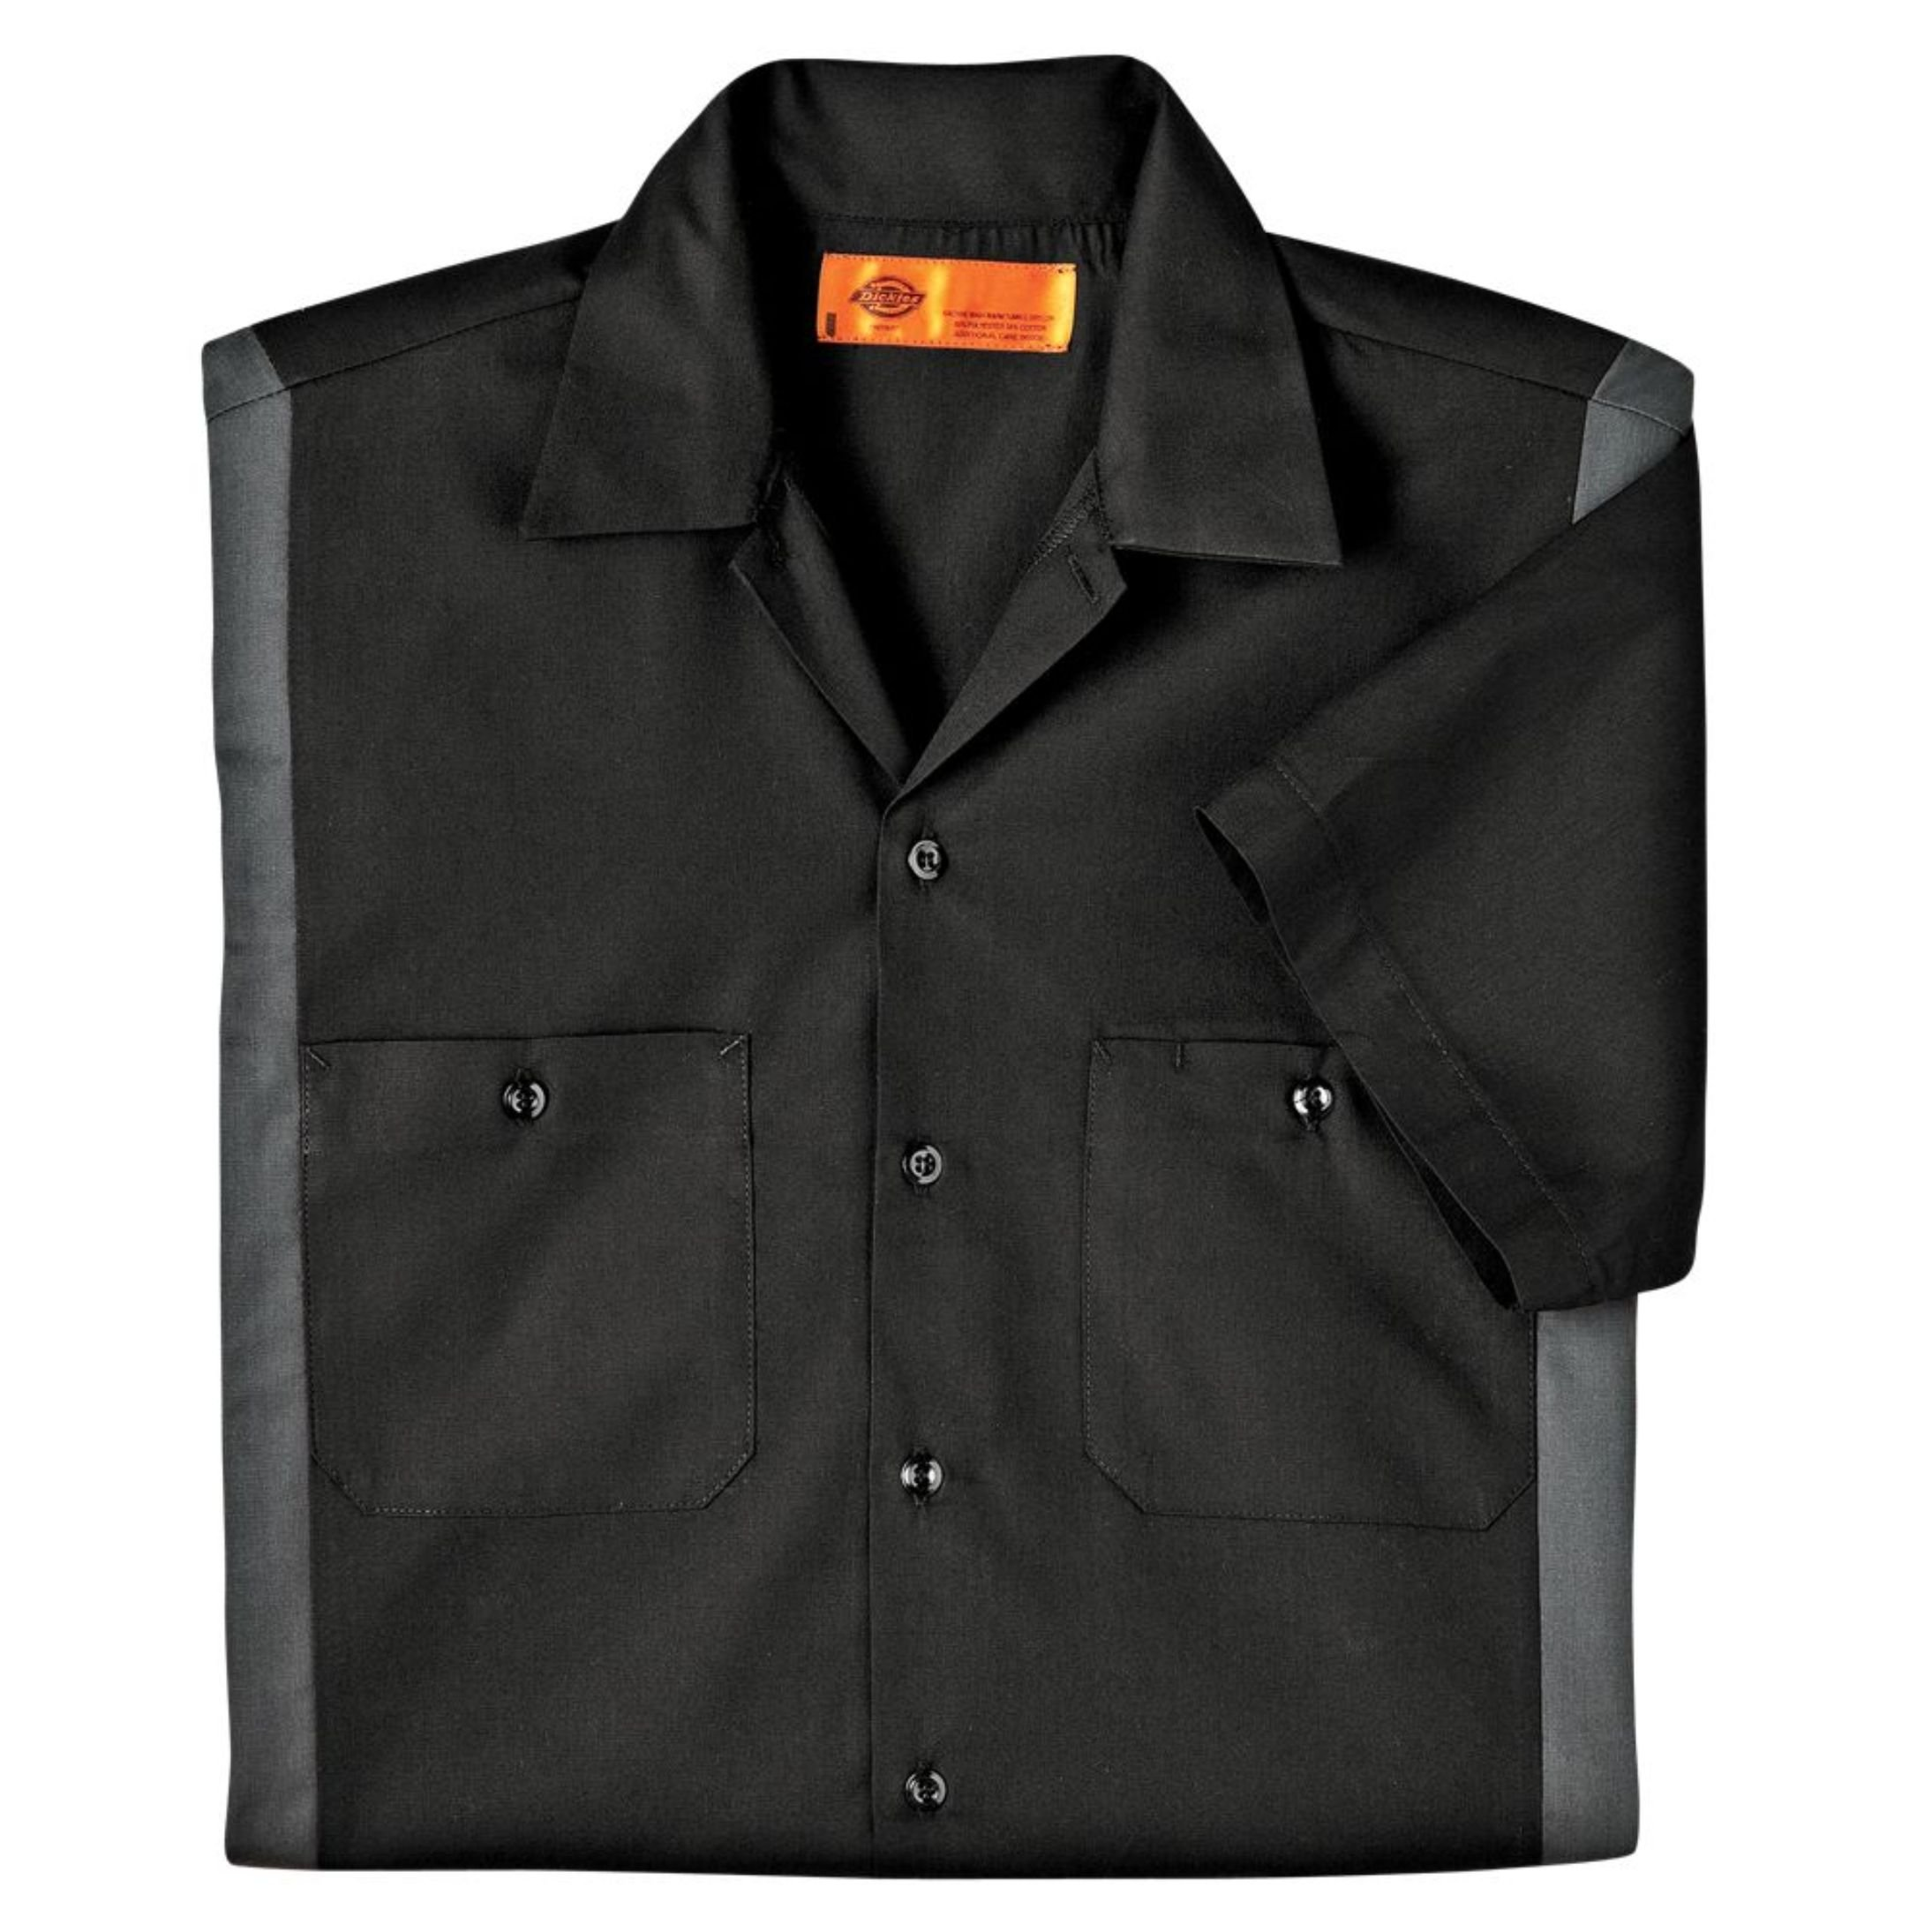 Dickies Occupational Workwear LS524BKCH XLT Polyester/Cotton Men's Short Sleeve Industrial Color Block Shirt, X-Large Tall, Black/Dark Charcoal